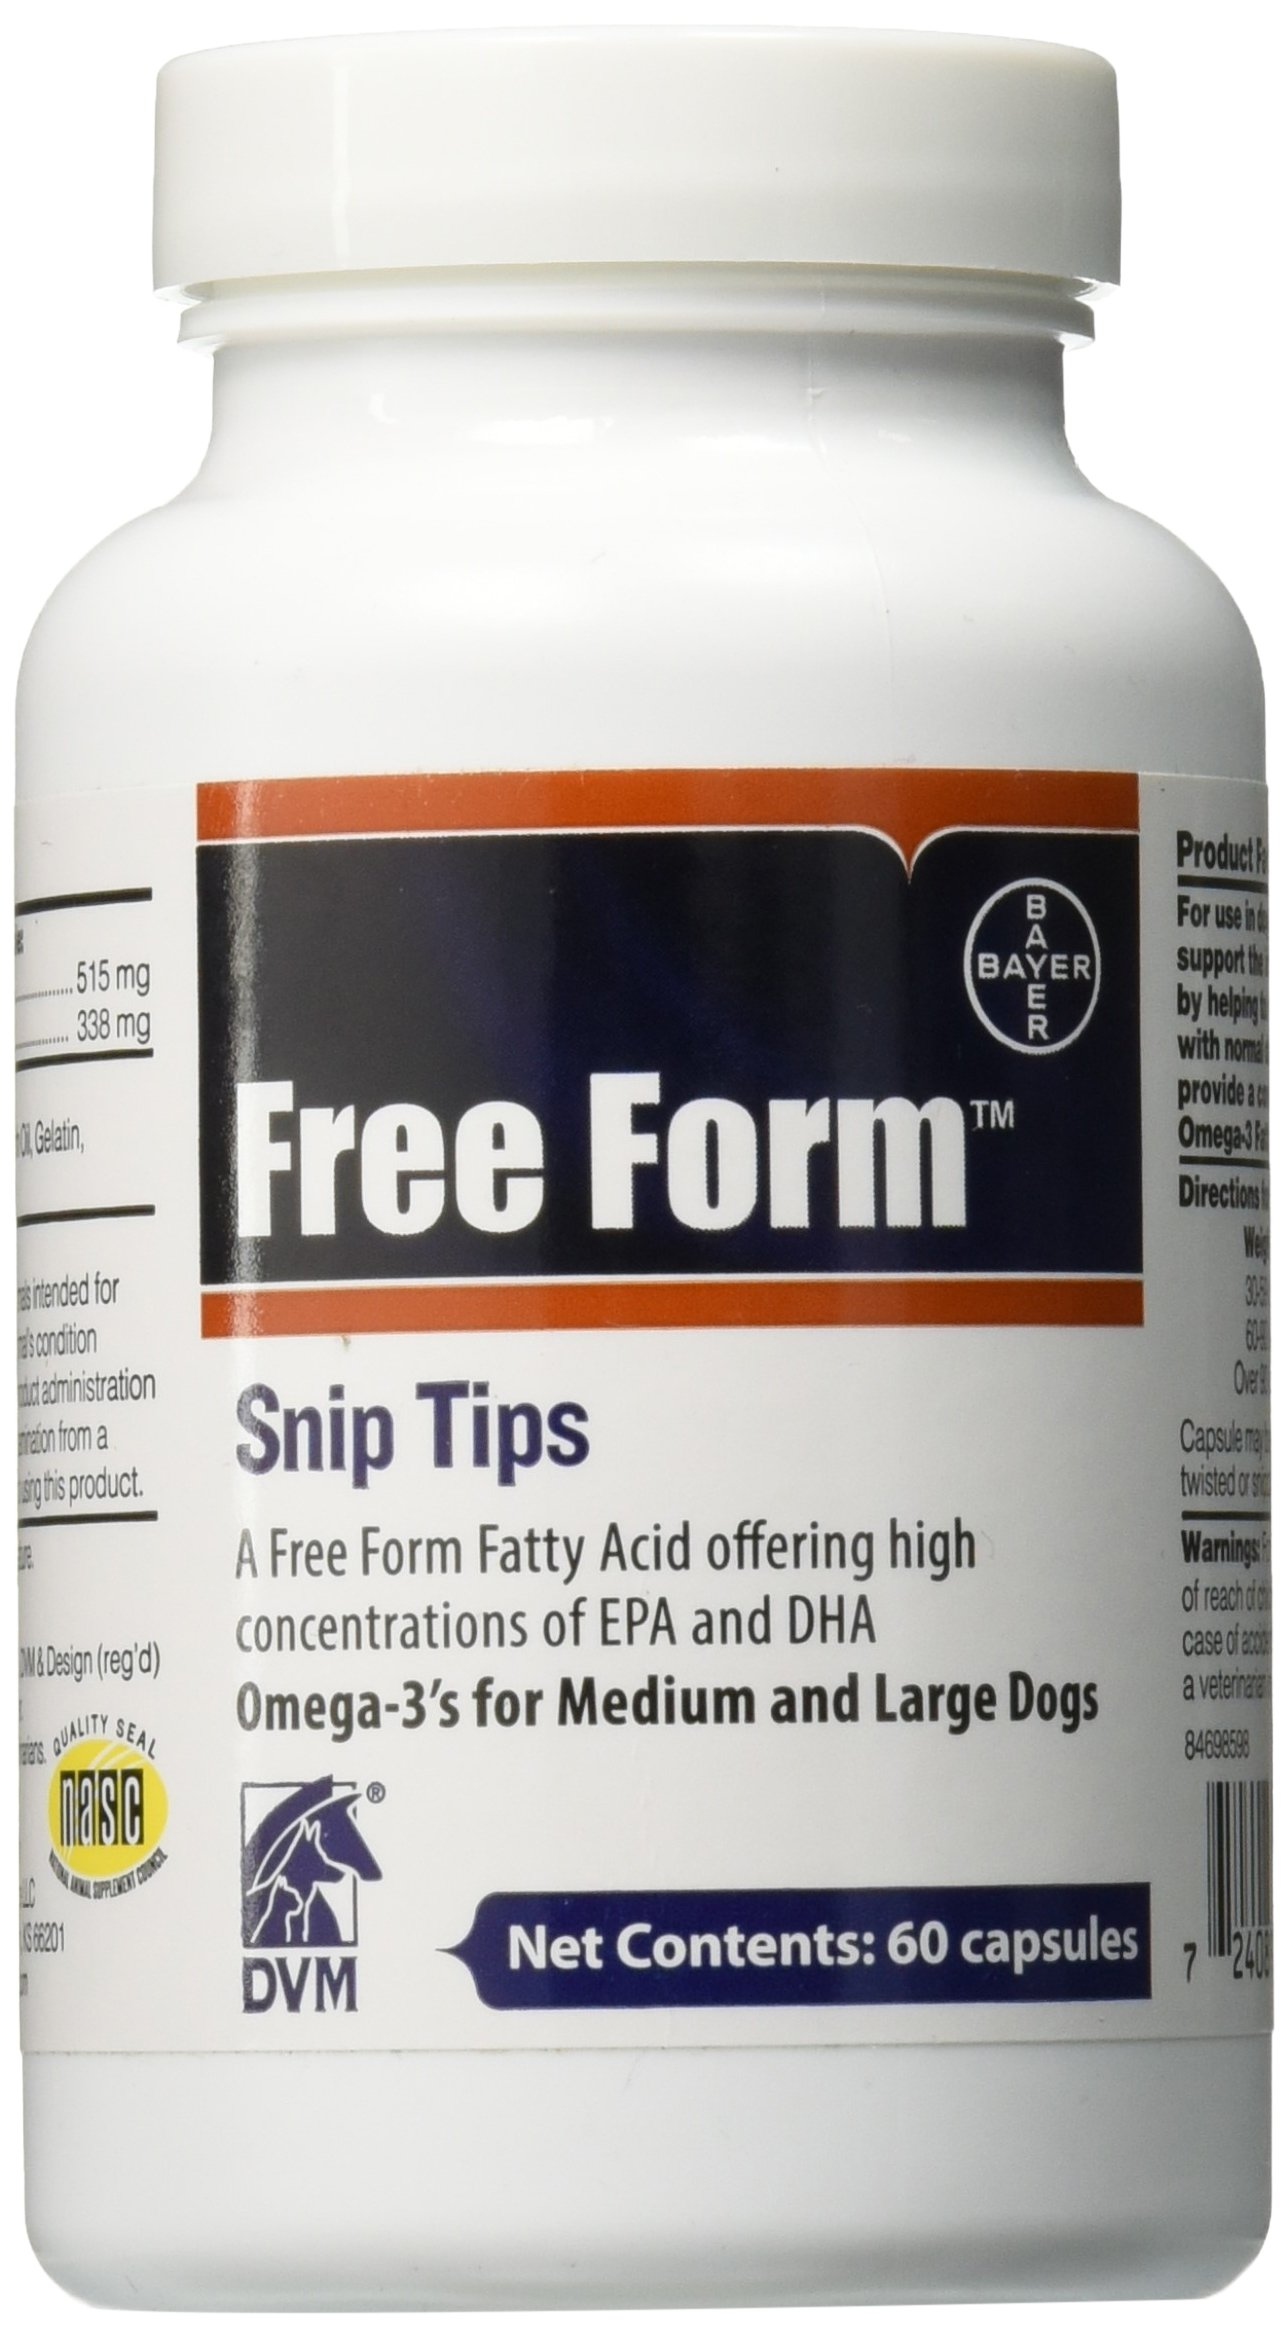 Bayer Free Form Snip Tips Gel Capsules, Omega-3 Fish Oil, 60ct, Fatty Acids for Cardiovascular, Joint, Cognitive, Kidney, Ocular Health, Medium to Large Dogs with High Levels of EPA and DHA